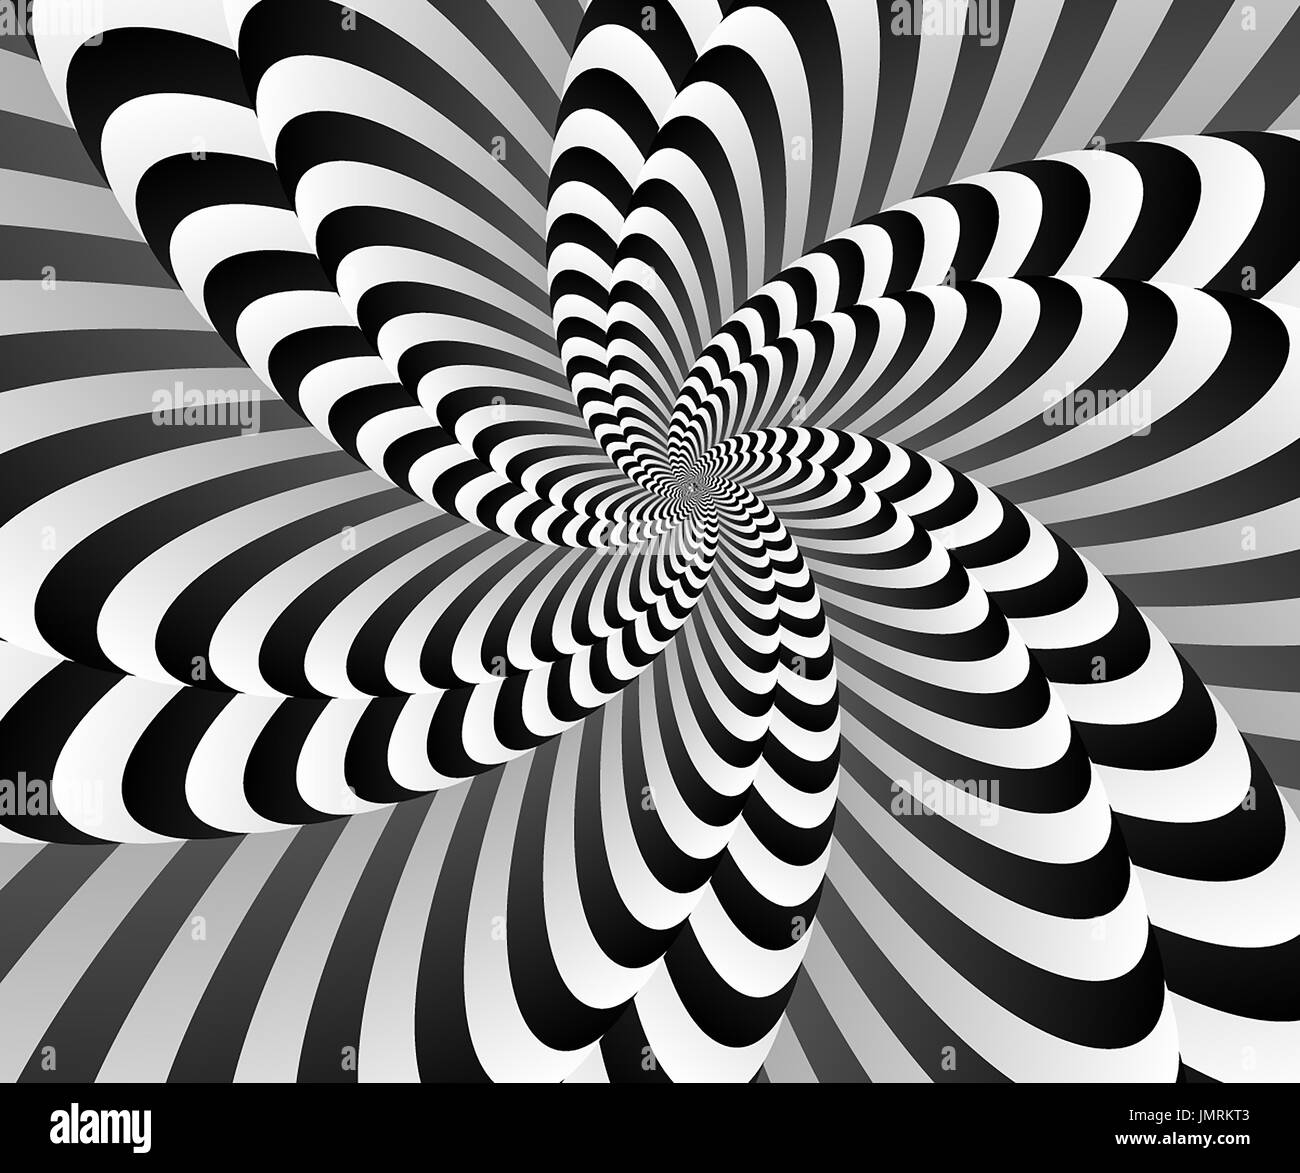 Geometric Art Black And White Stock Photos Images Alamy